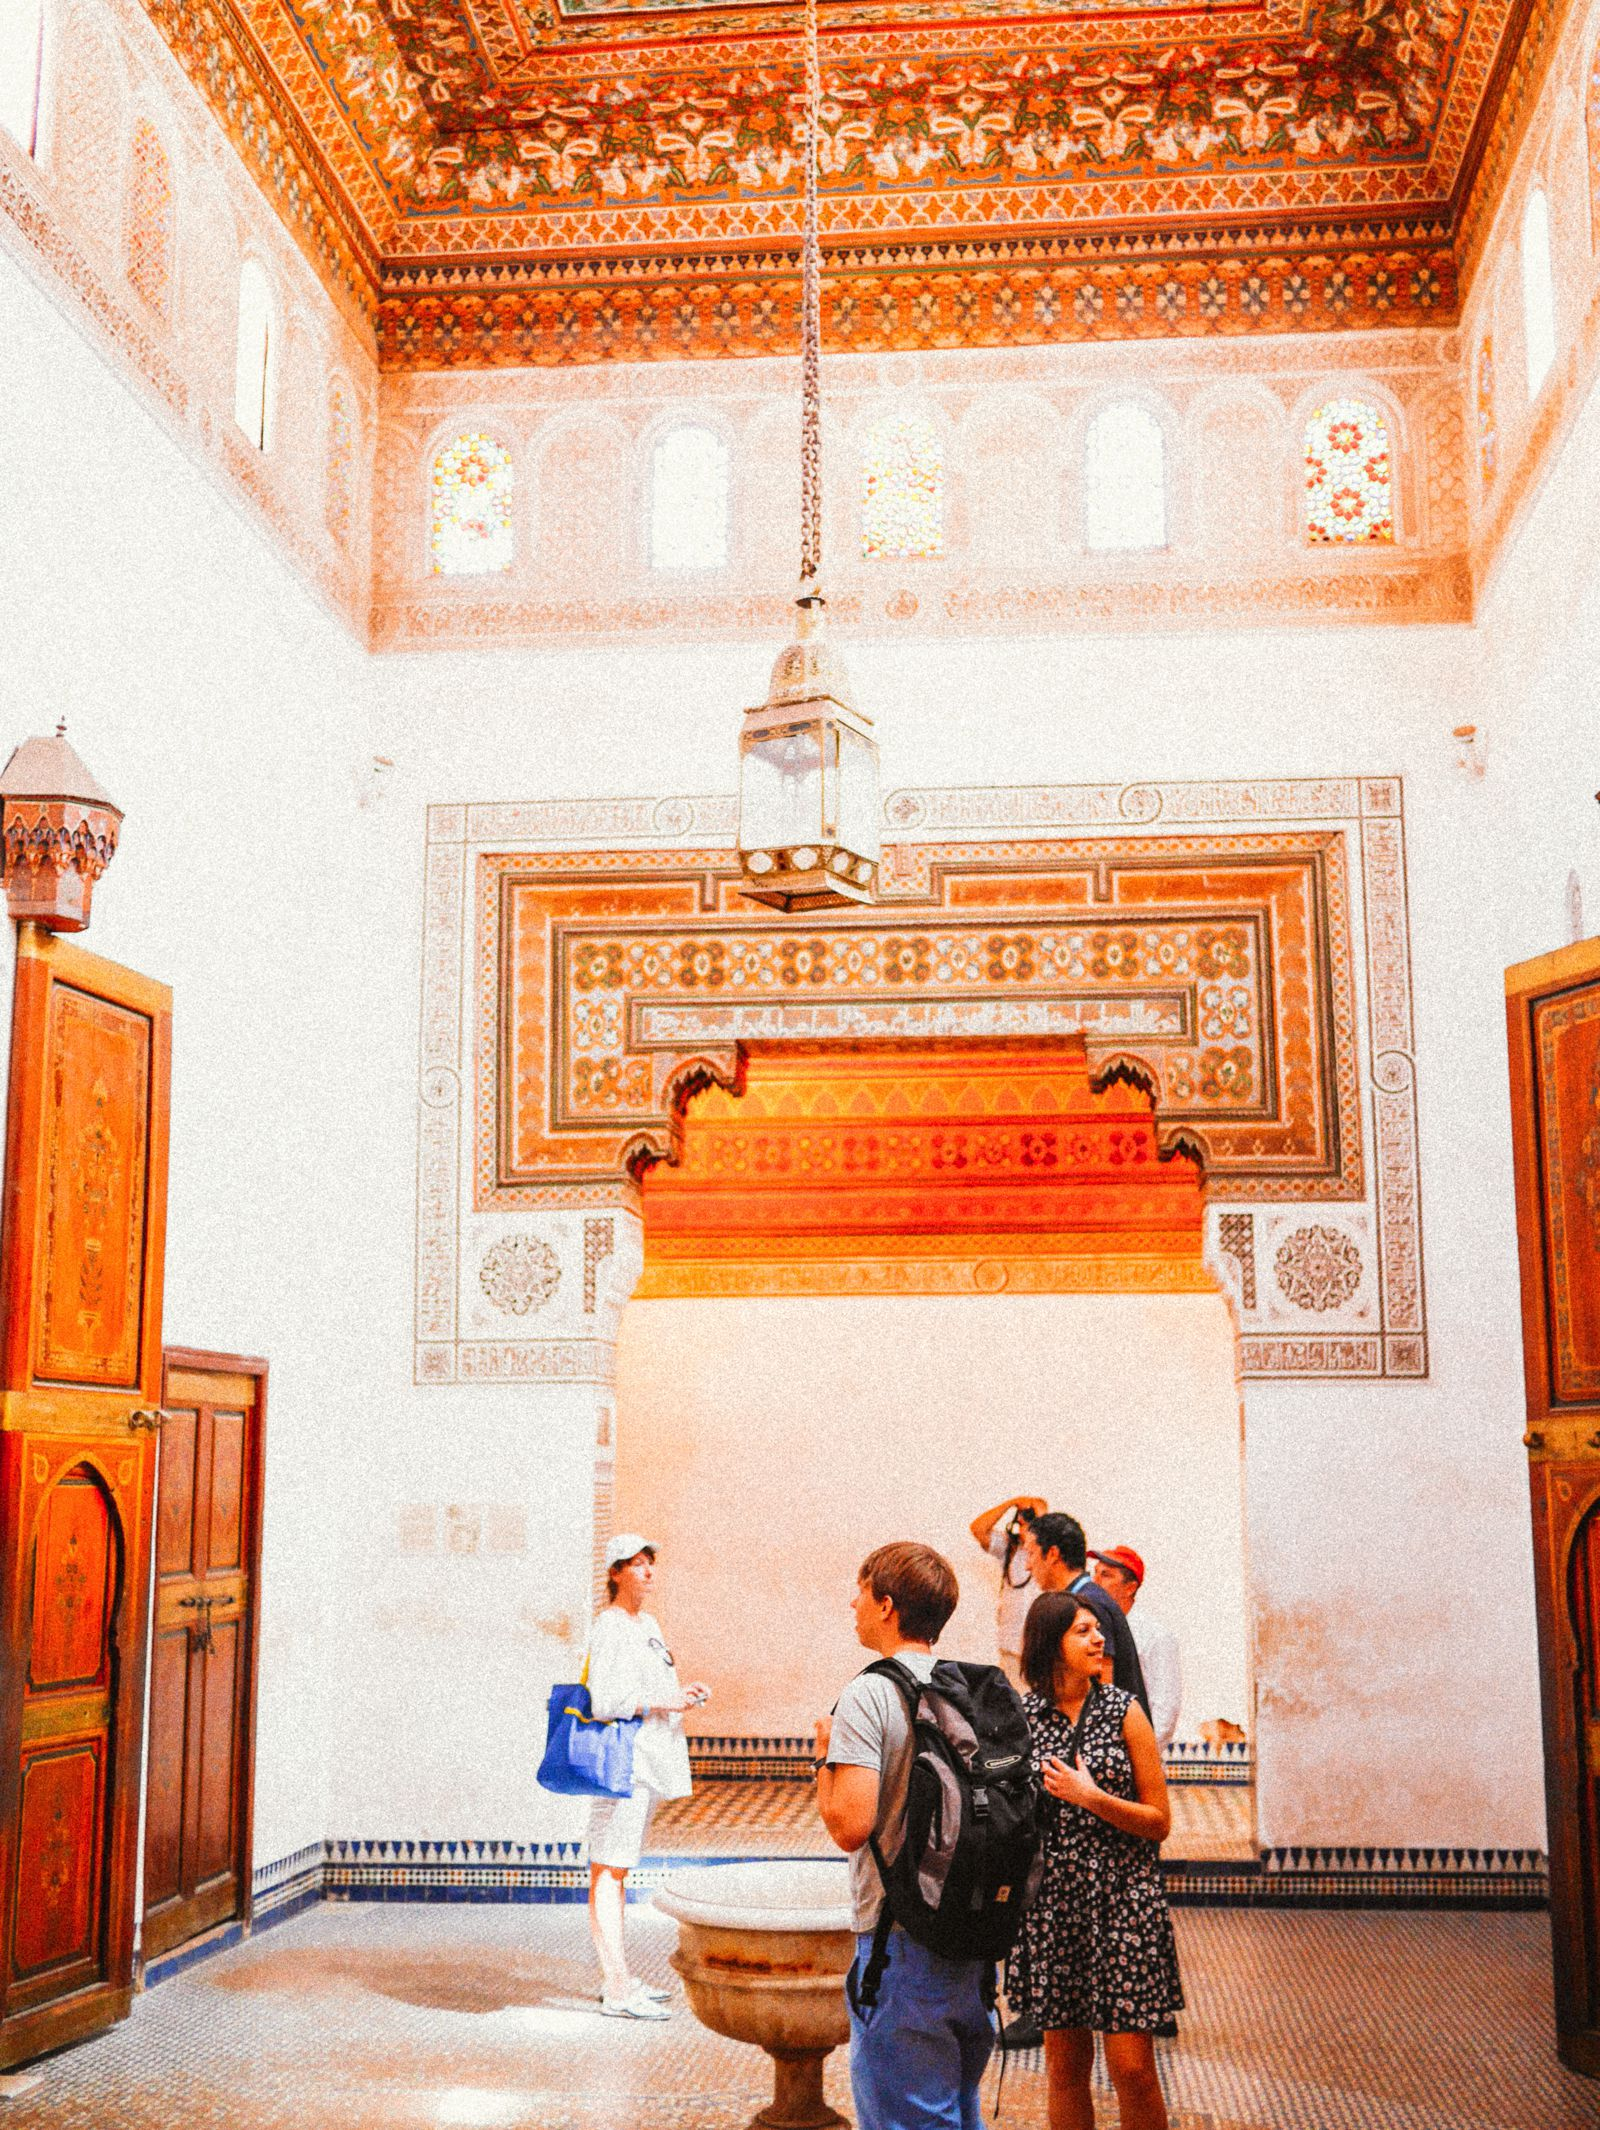 Moroccan Days: Afternoons in Marrakesh... (26)